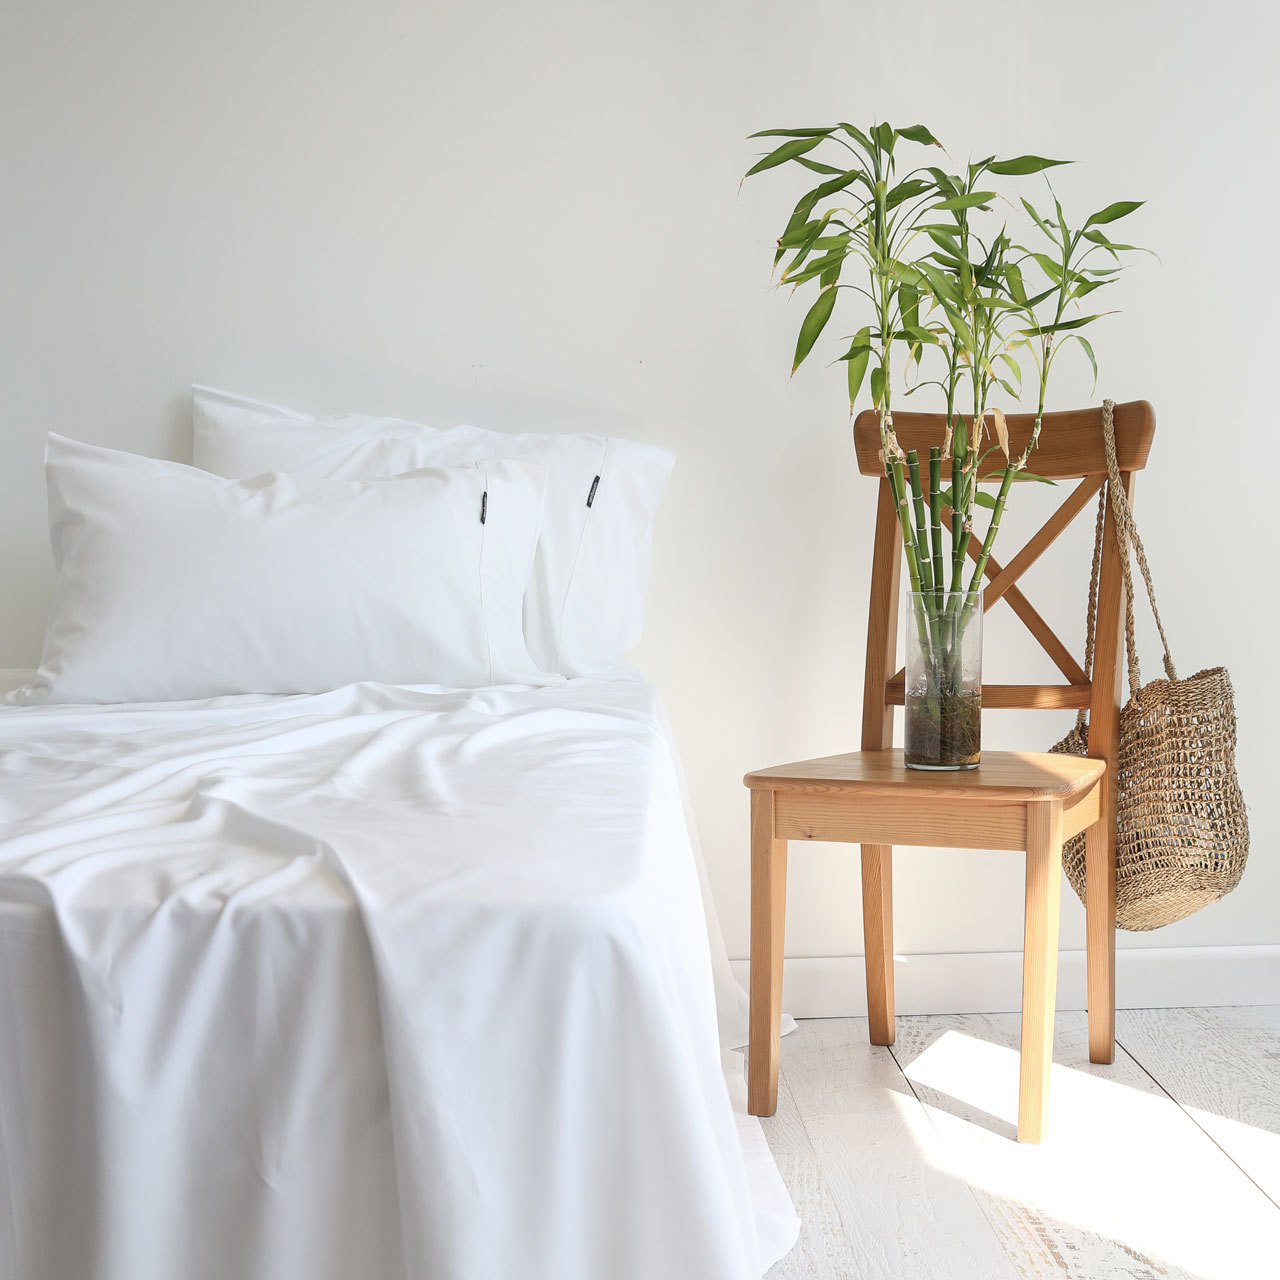 Bamboo Sheets From Canningvale